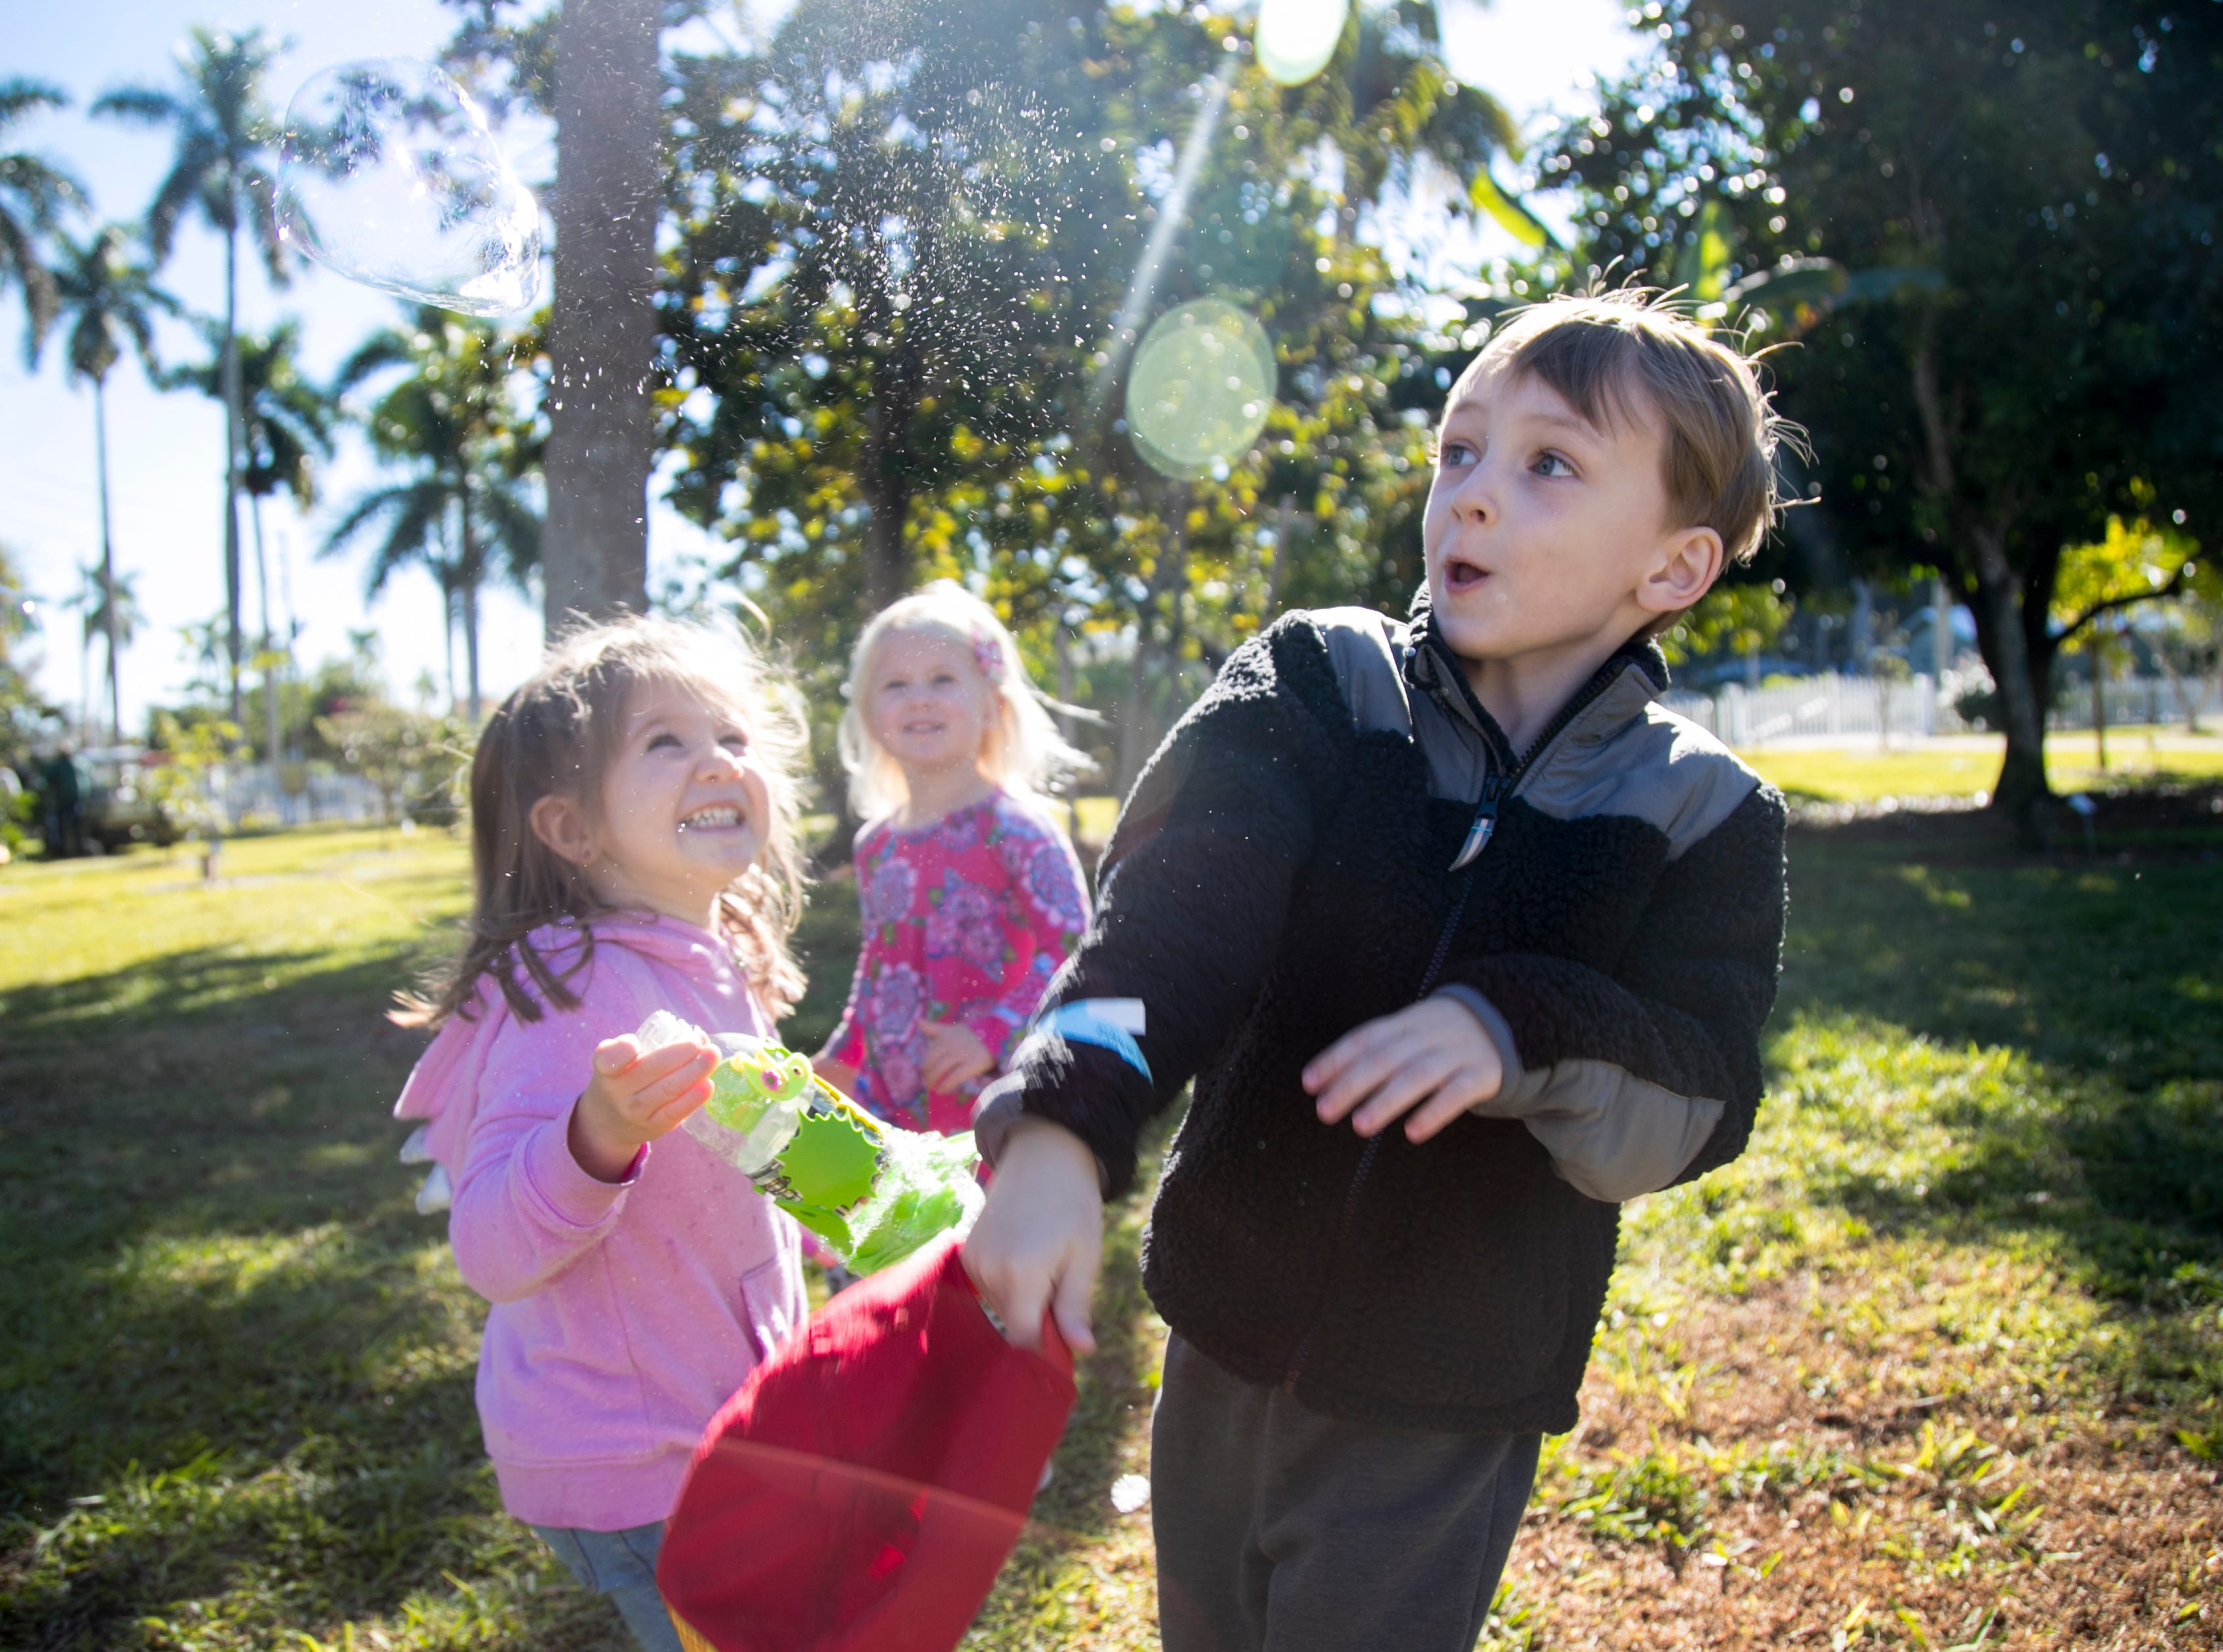 Avery Berry, 3, left, Stella Curry, 3, center, laugh as Mac Halligan, 4, right, pops a giant bubble during the monthly Emerging Inventors program on Thursday, January 17, 2019, at the Edison & Ford Winter Estates in Fort Myers. This month's program was called Bouncing Bubbles. The next program, which is for children 5 and younger, is February 21 at 9:30 am, and is called is LEGO Art and Engineering.